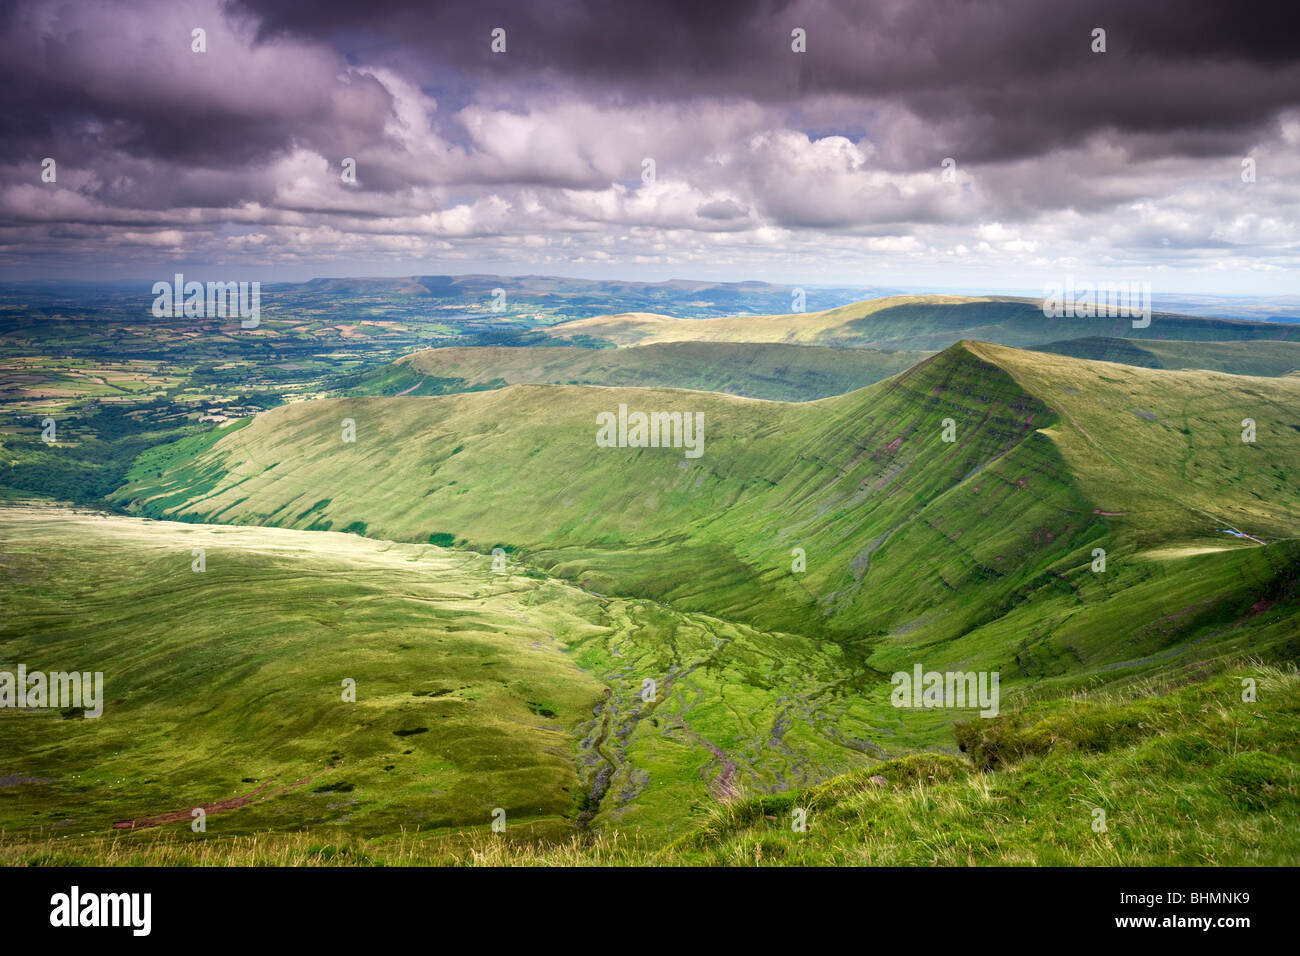 Cribyn viewed from Pen-y-Fan, the highest mountain in the Brecon Beacons National Park, Powys, Wales, UK. Summer - Stock Image